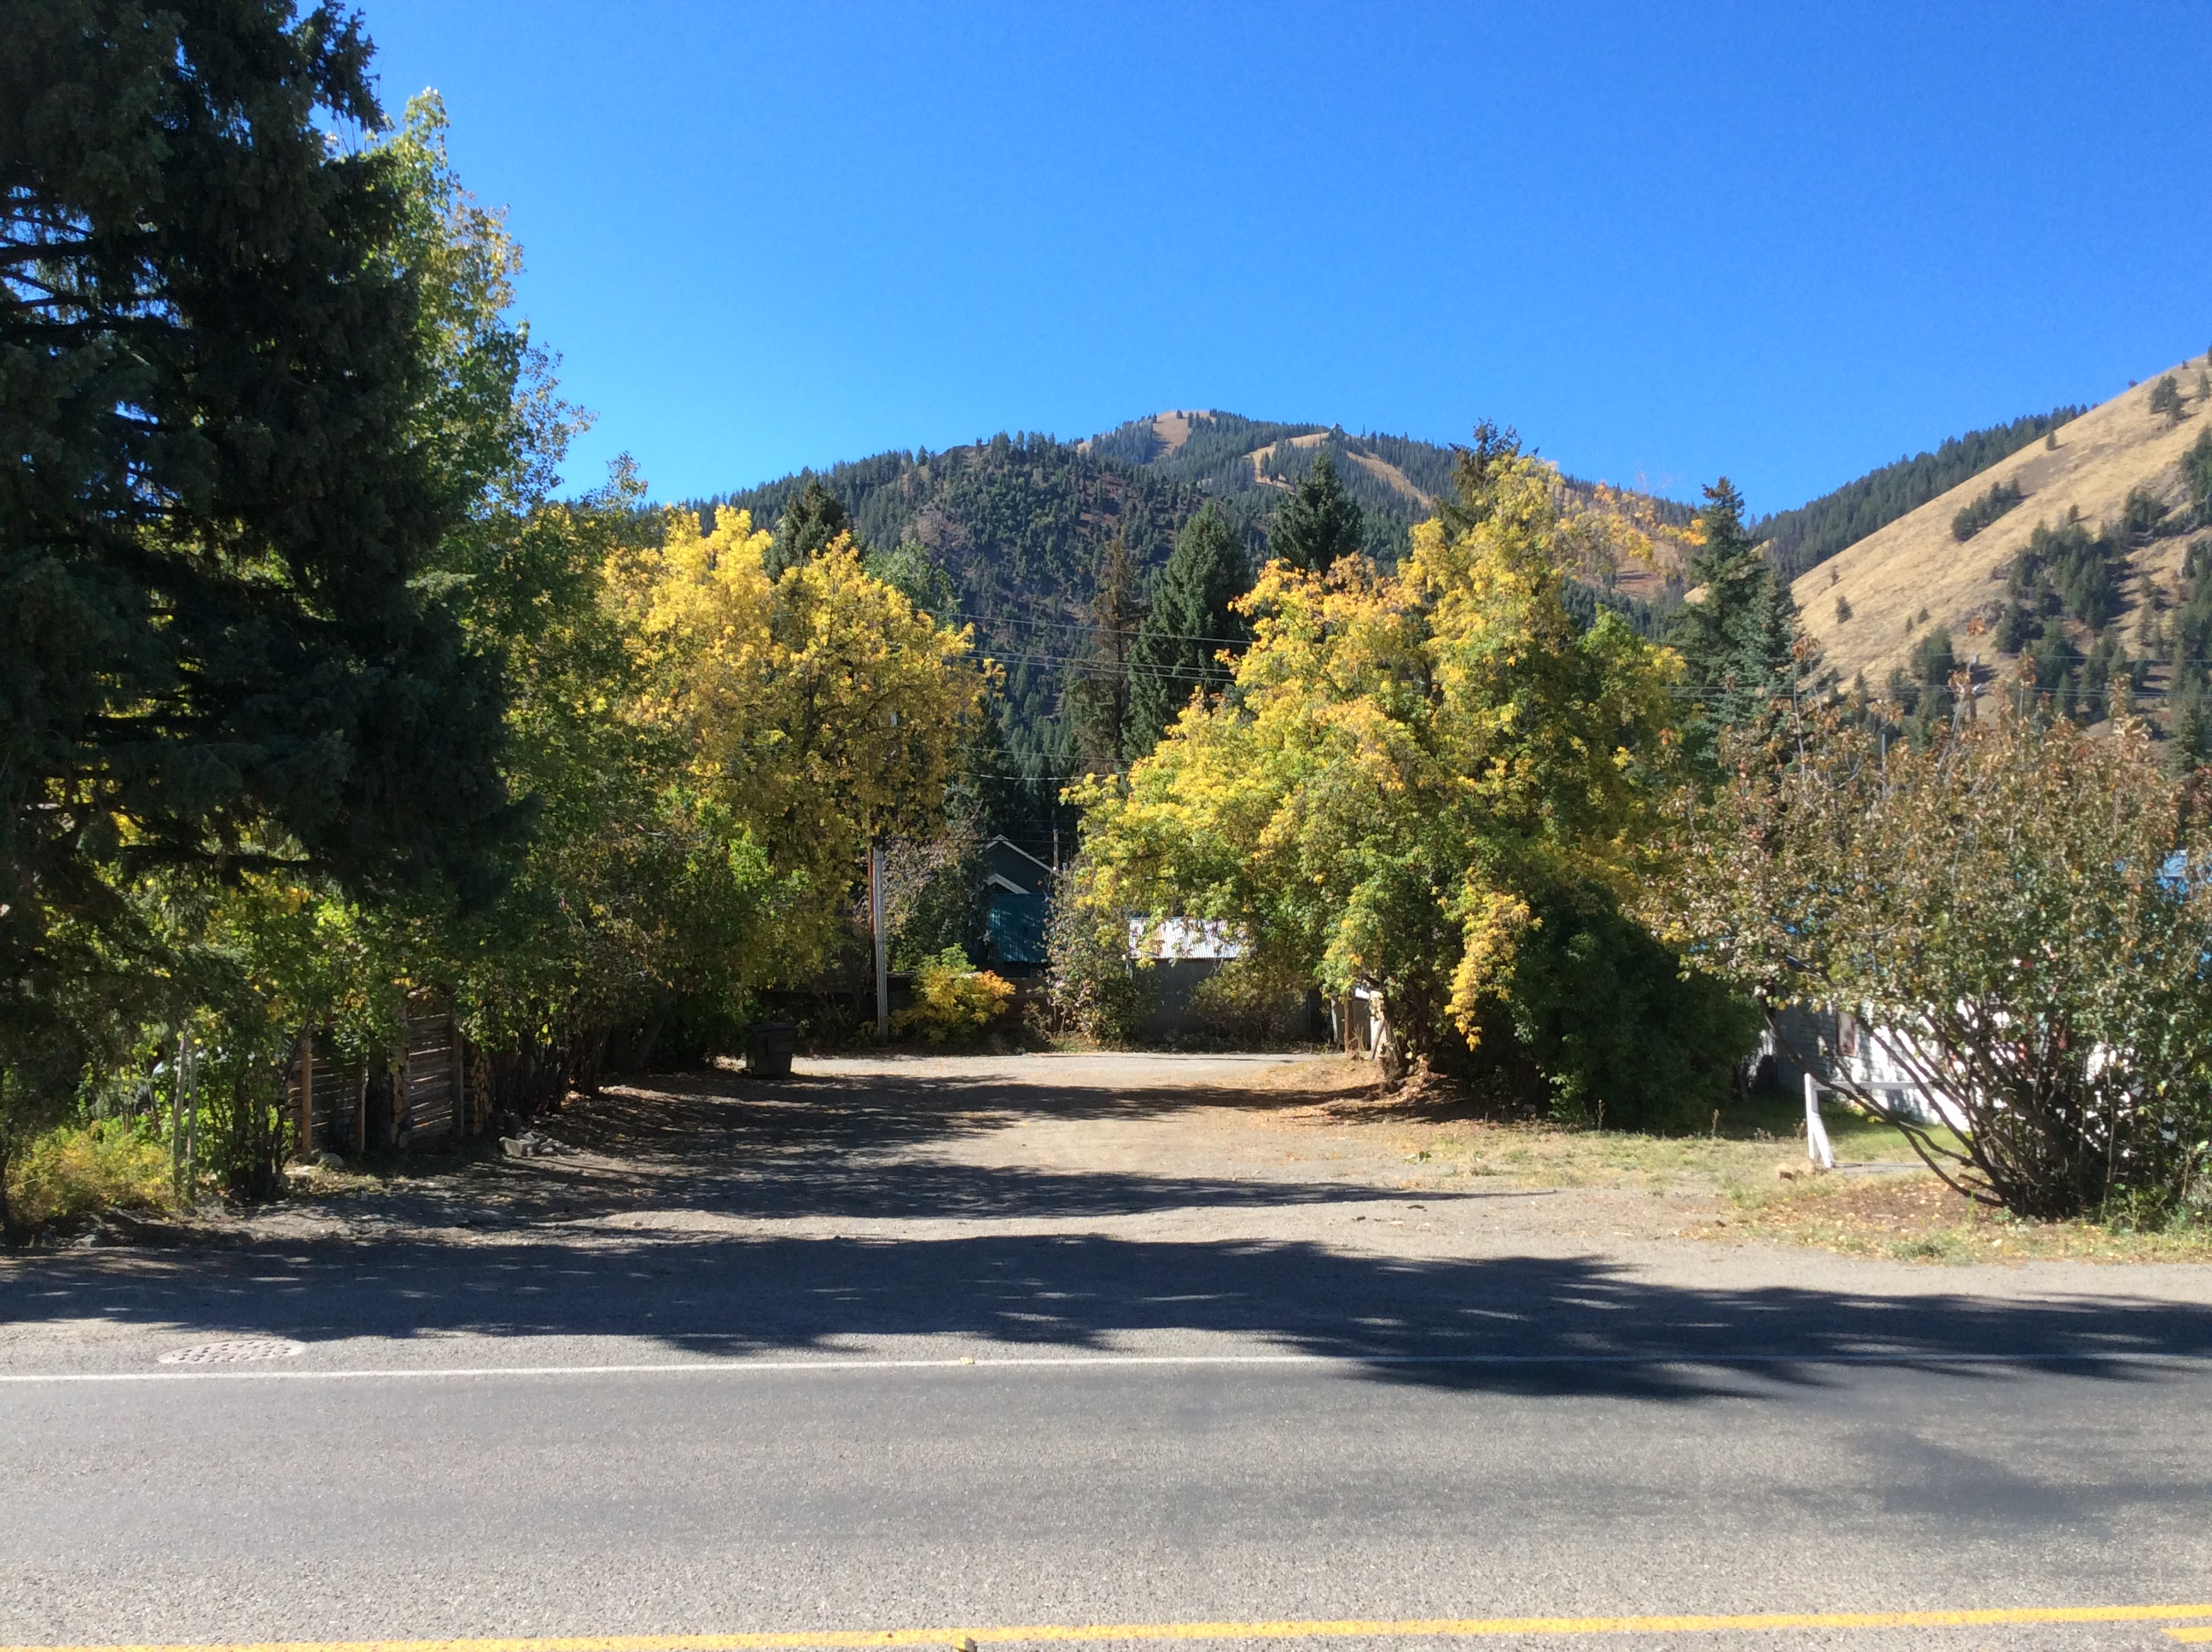 Land for Sale at Excellent Exposure 771 Warm Springs Road Warm Springs, Ketchum, Idaho, 83340 United States